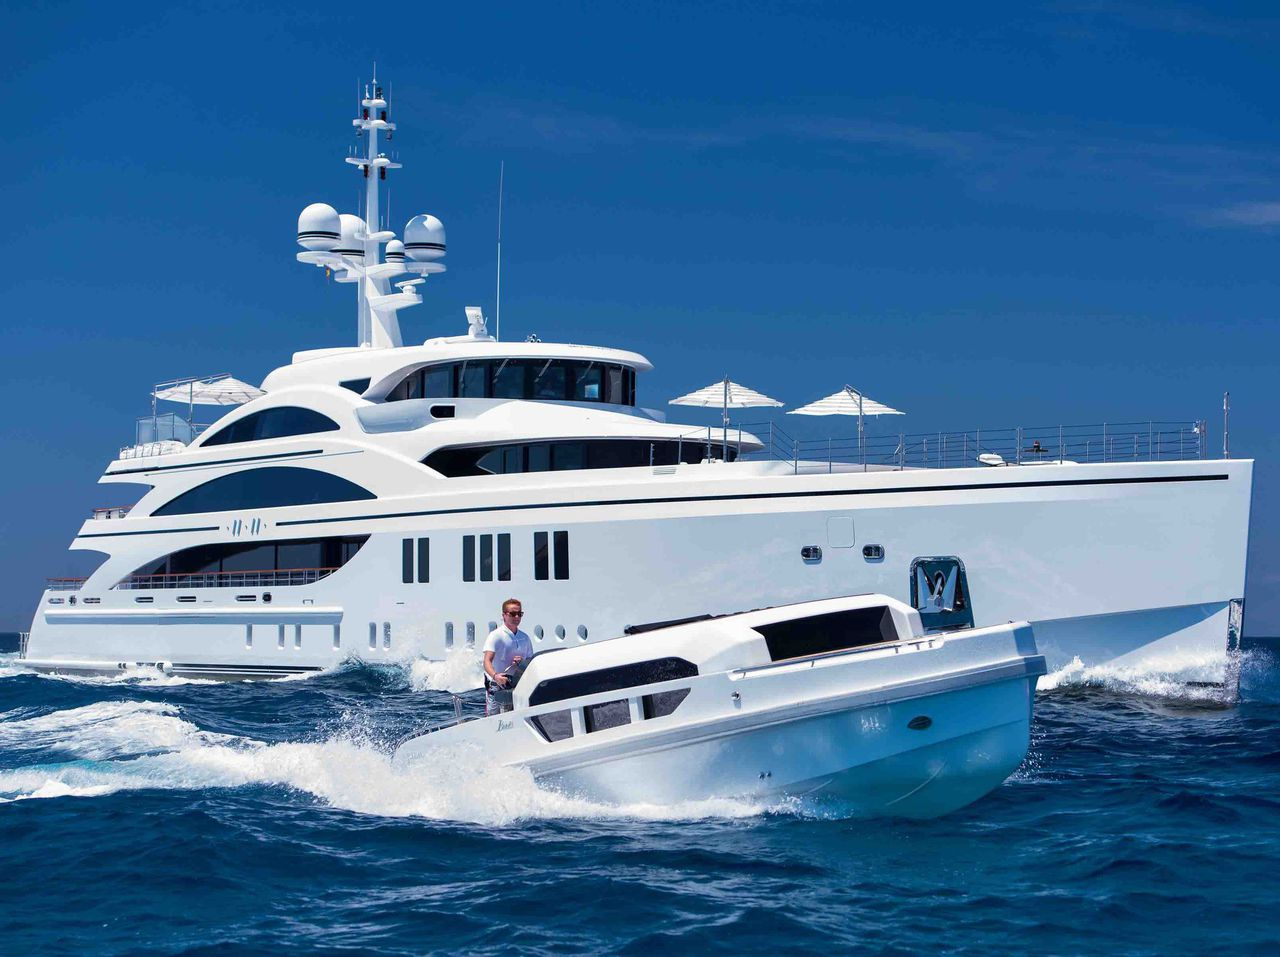 Benetti 63m Luxus Motoryachtimage 2